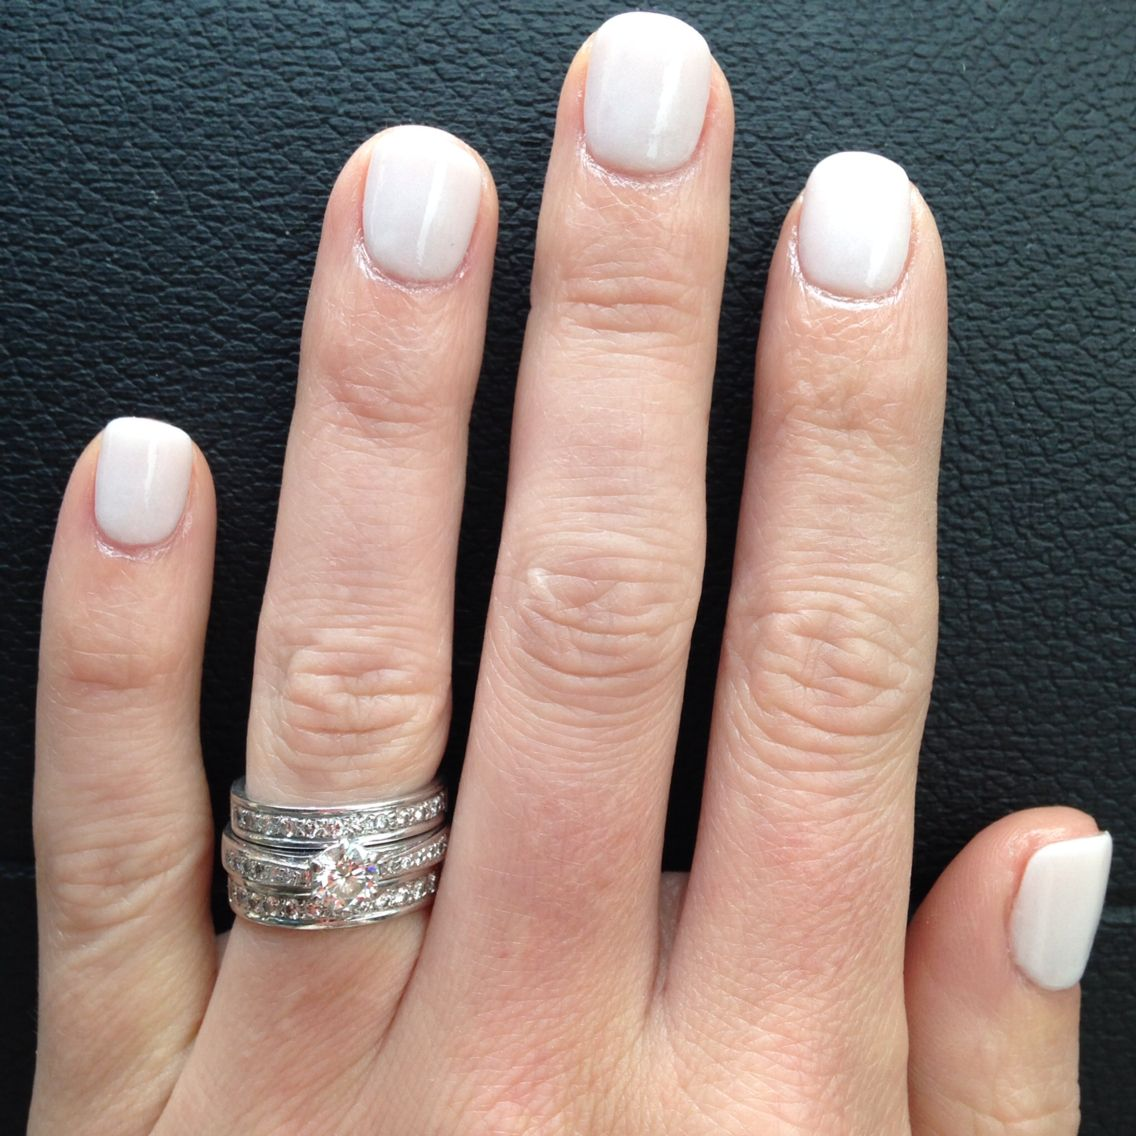 SNS Nails - Signature Nail System - Natural Nail Dipping System ...